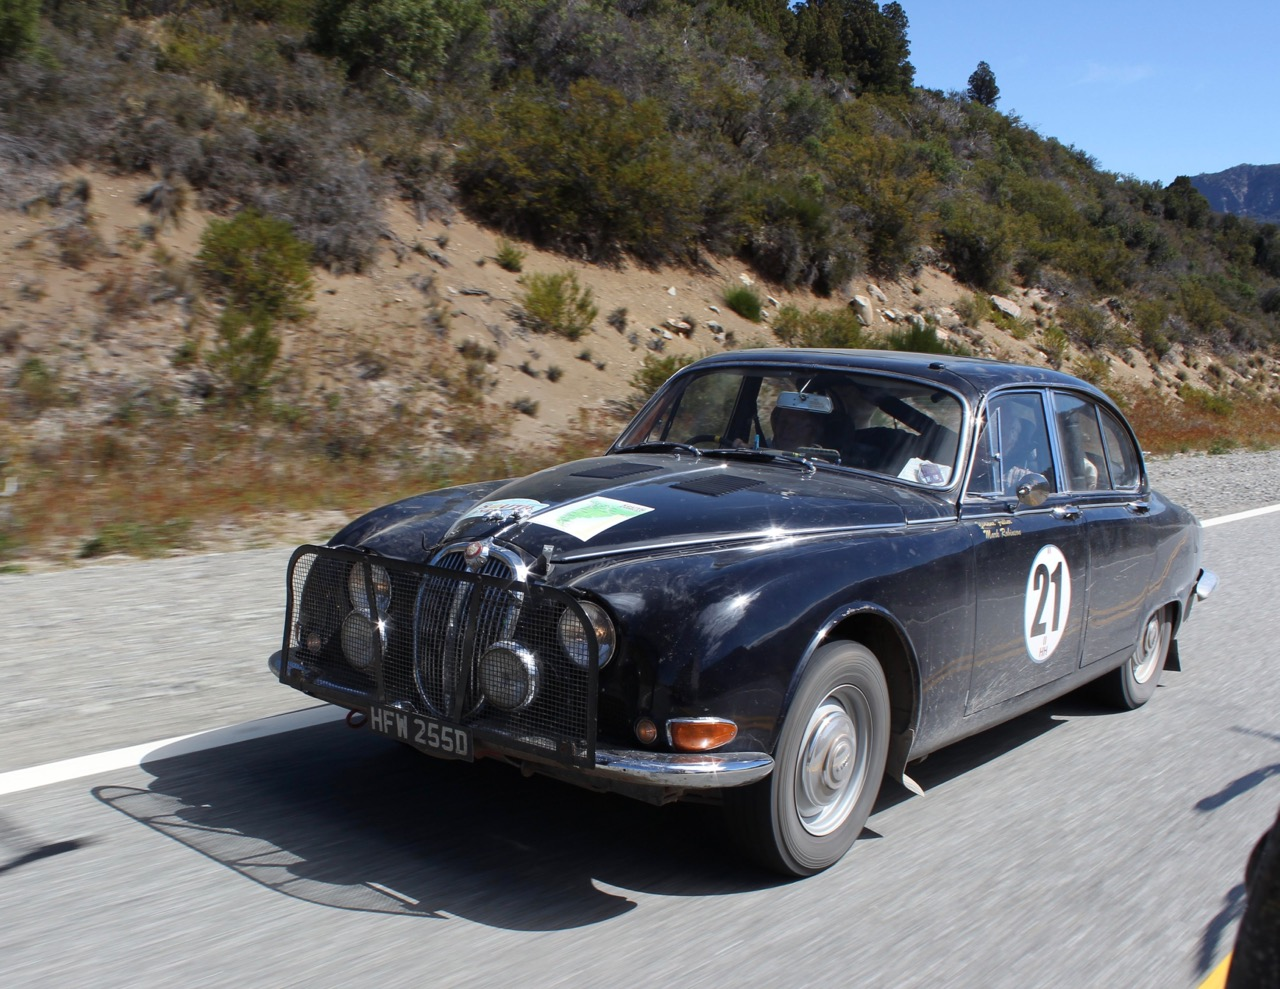 A Jaguar in pavement in South American event